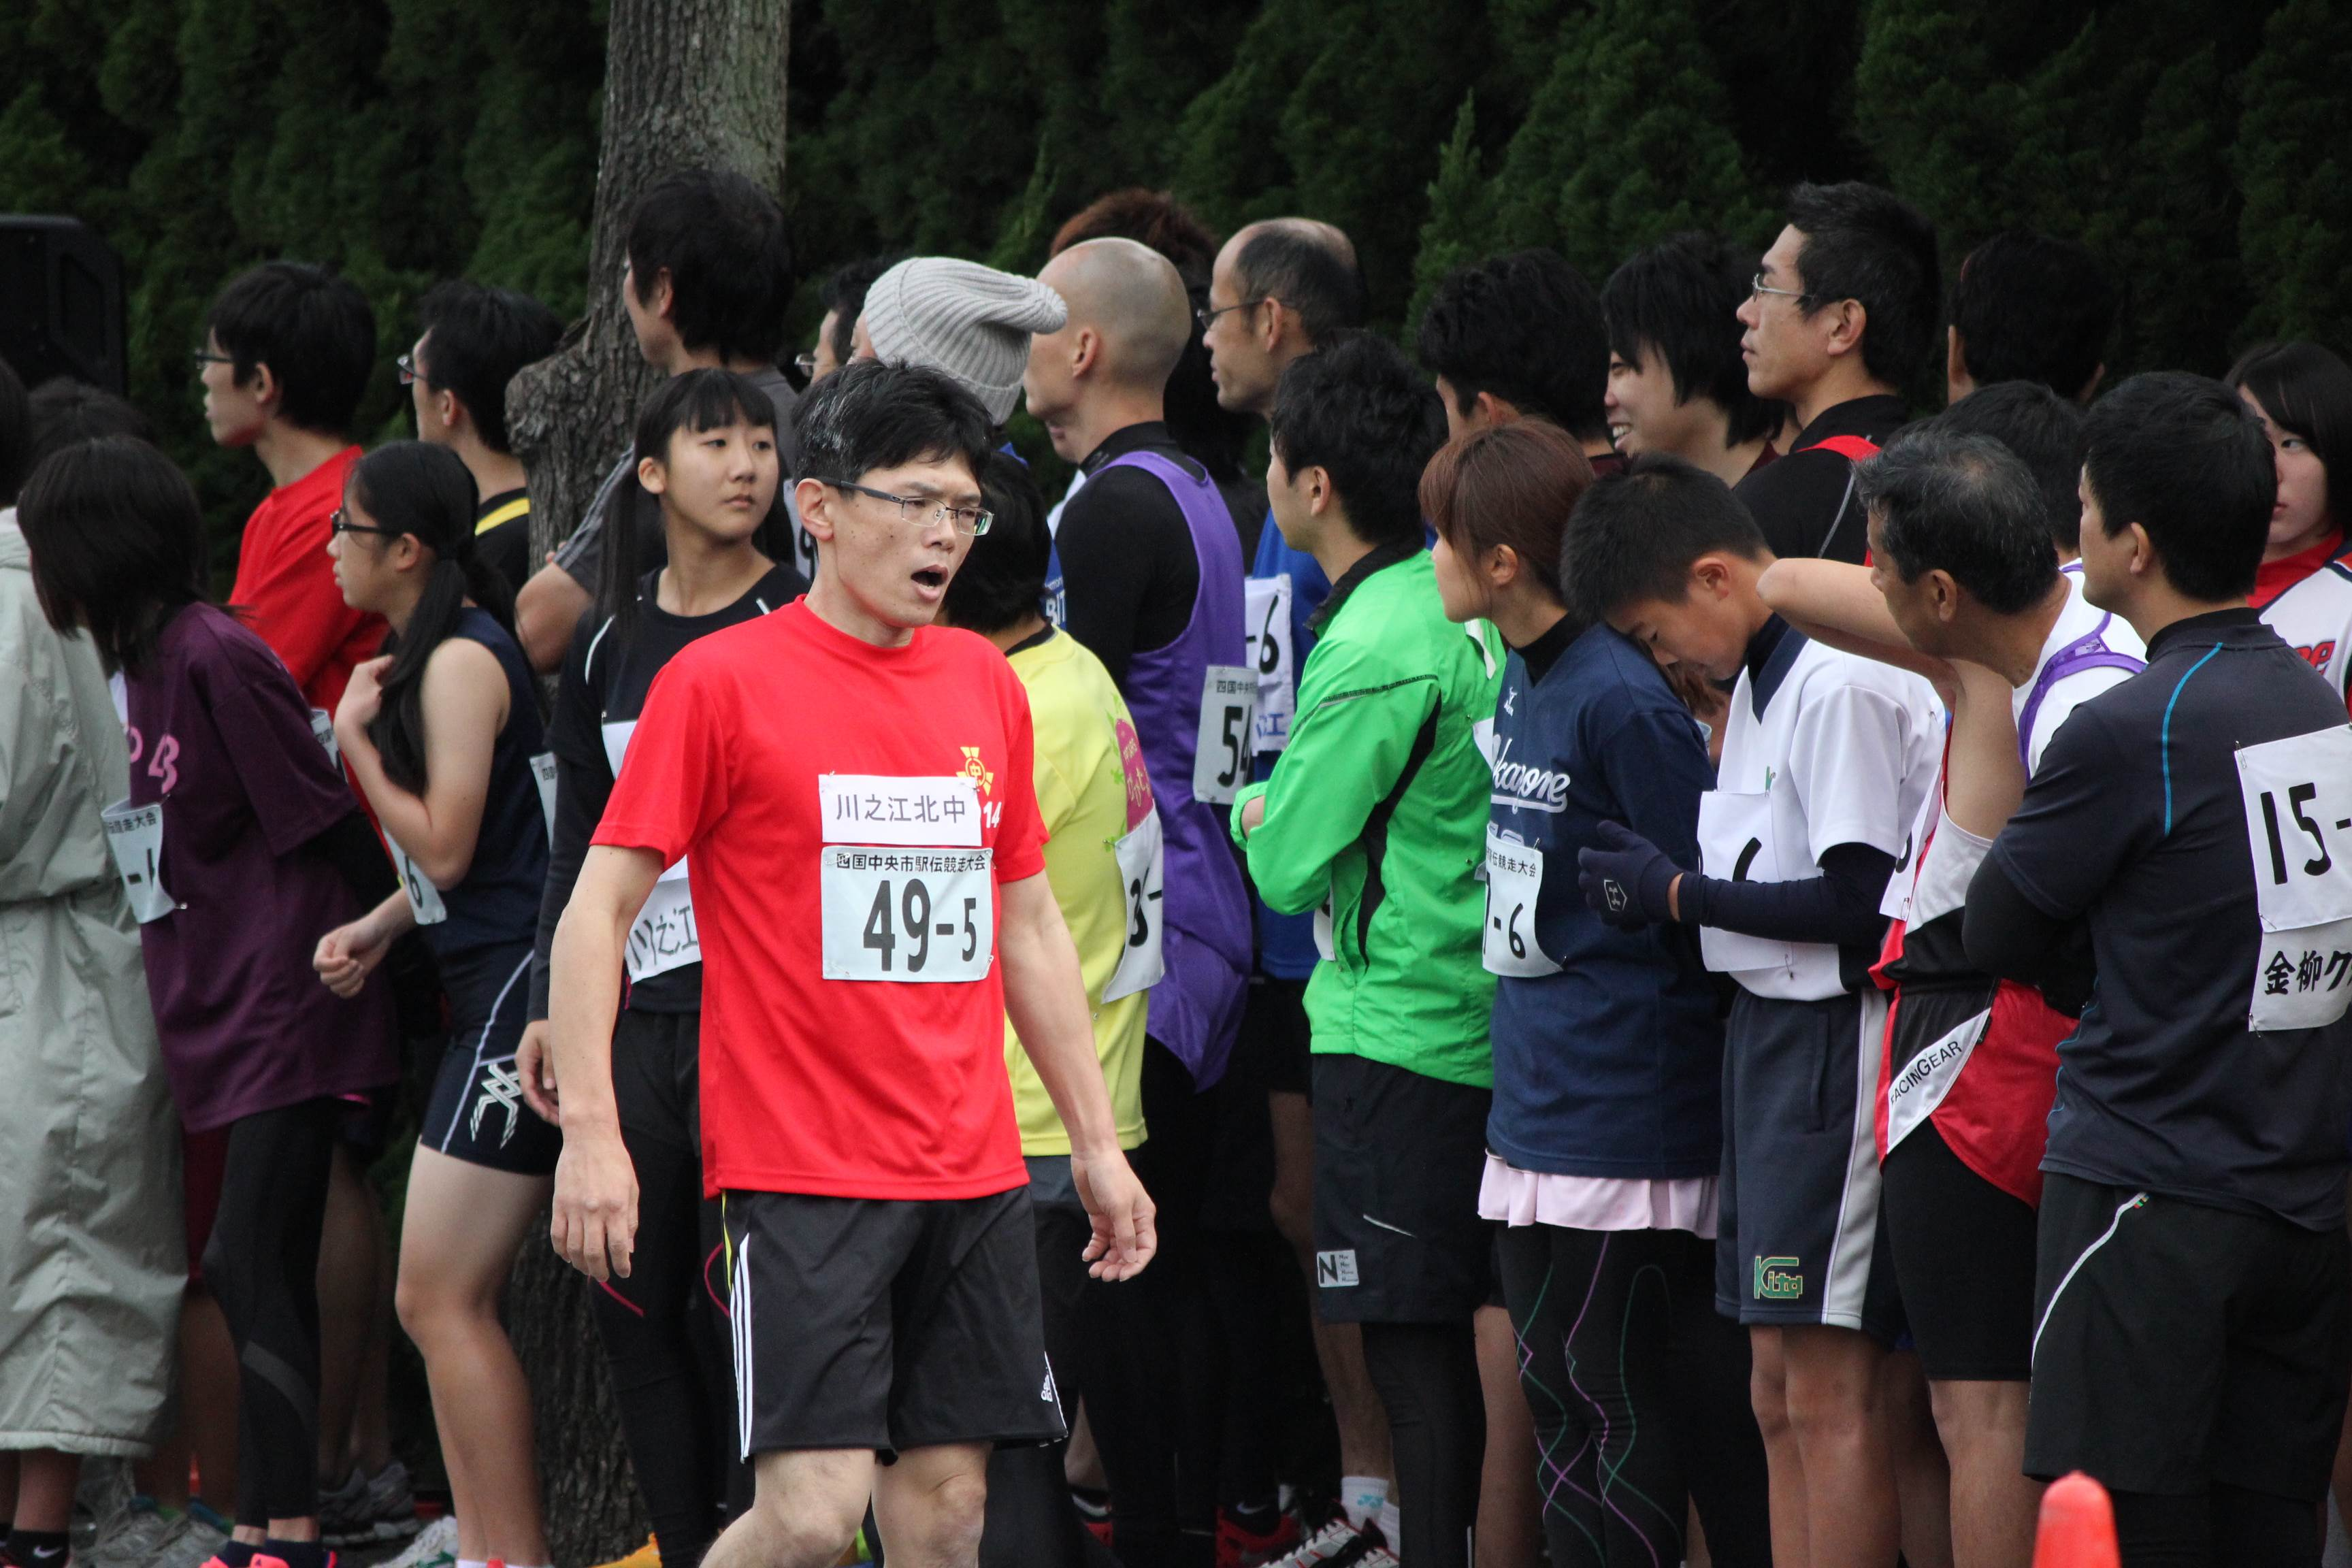 駅伝2015 (5)